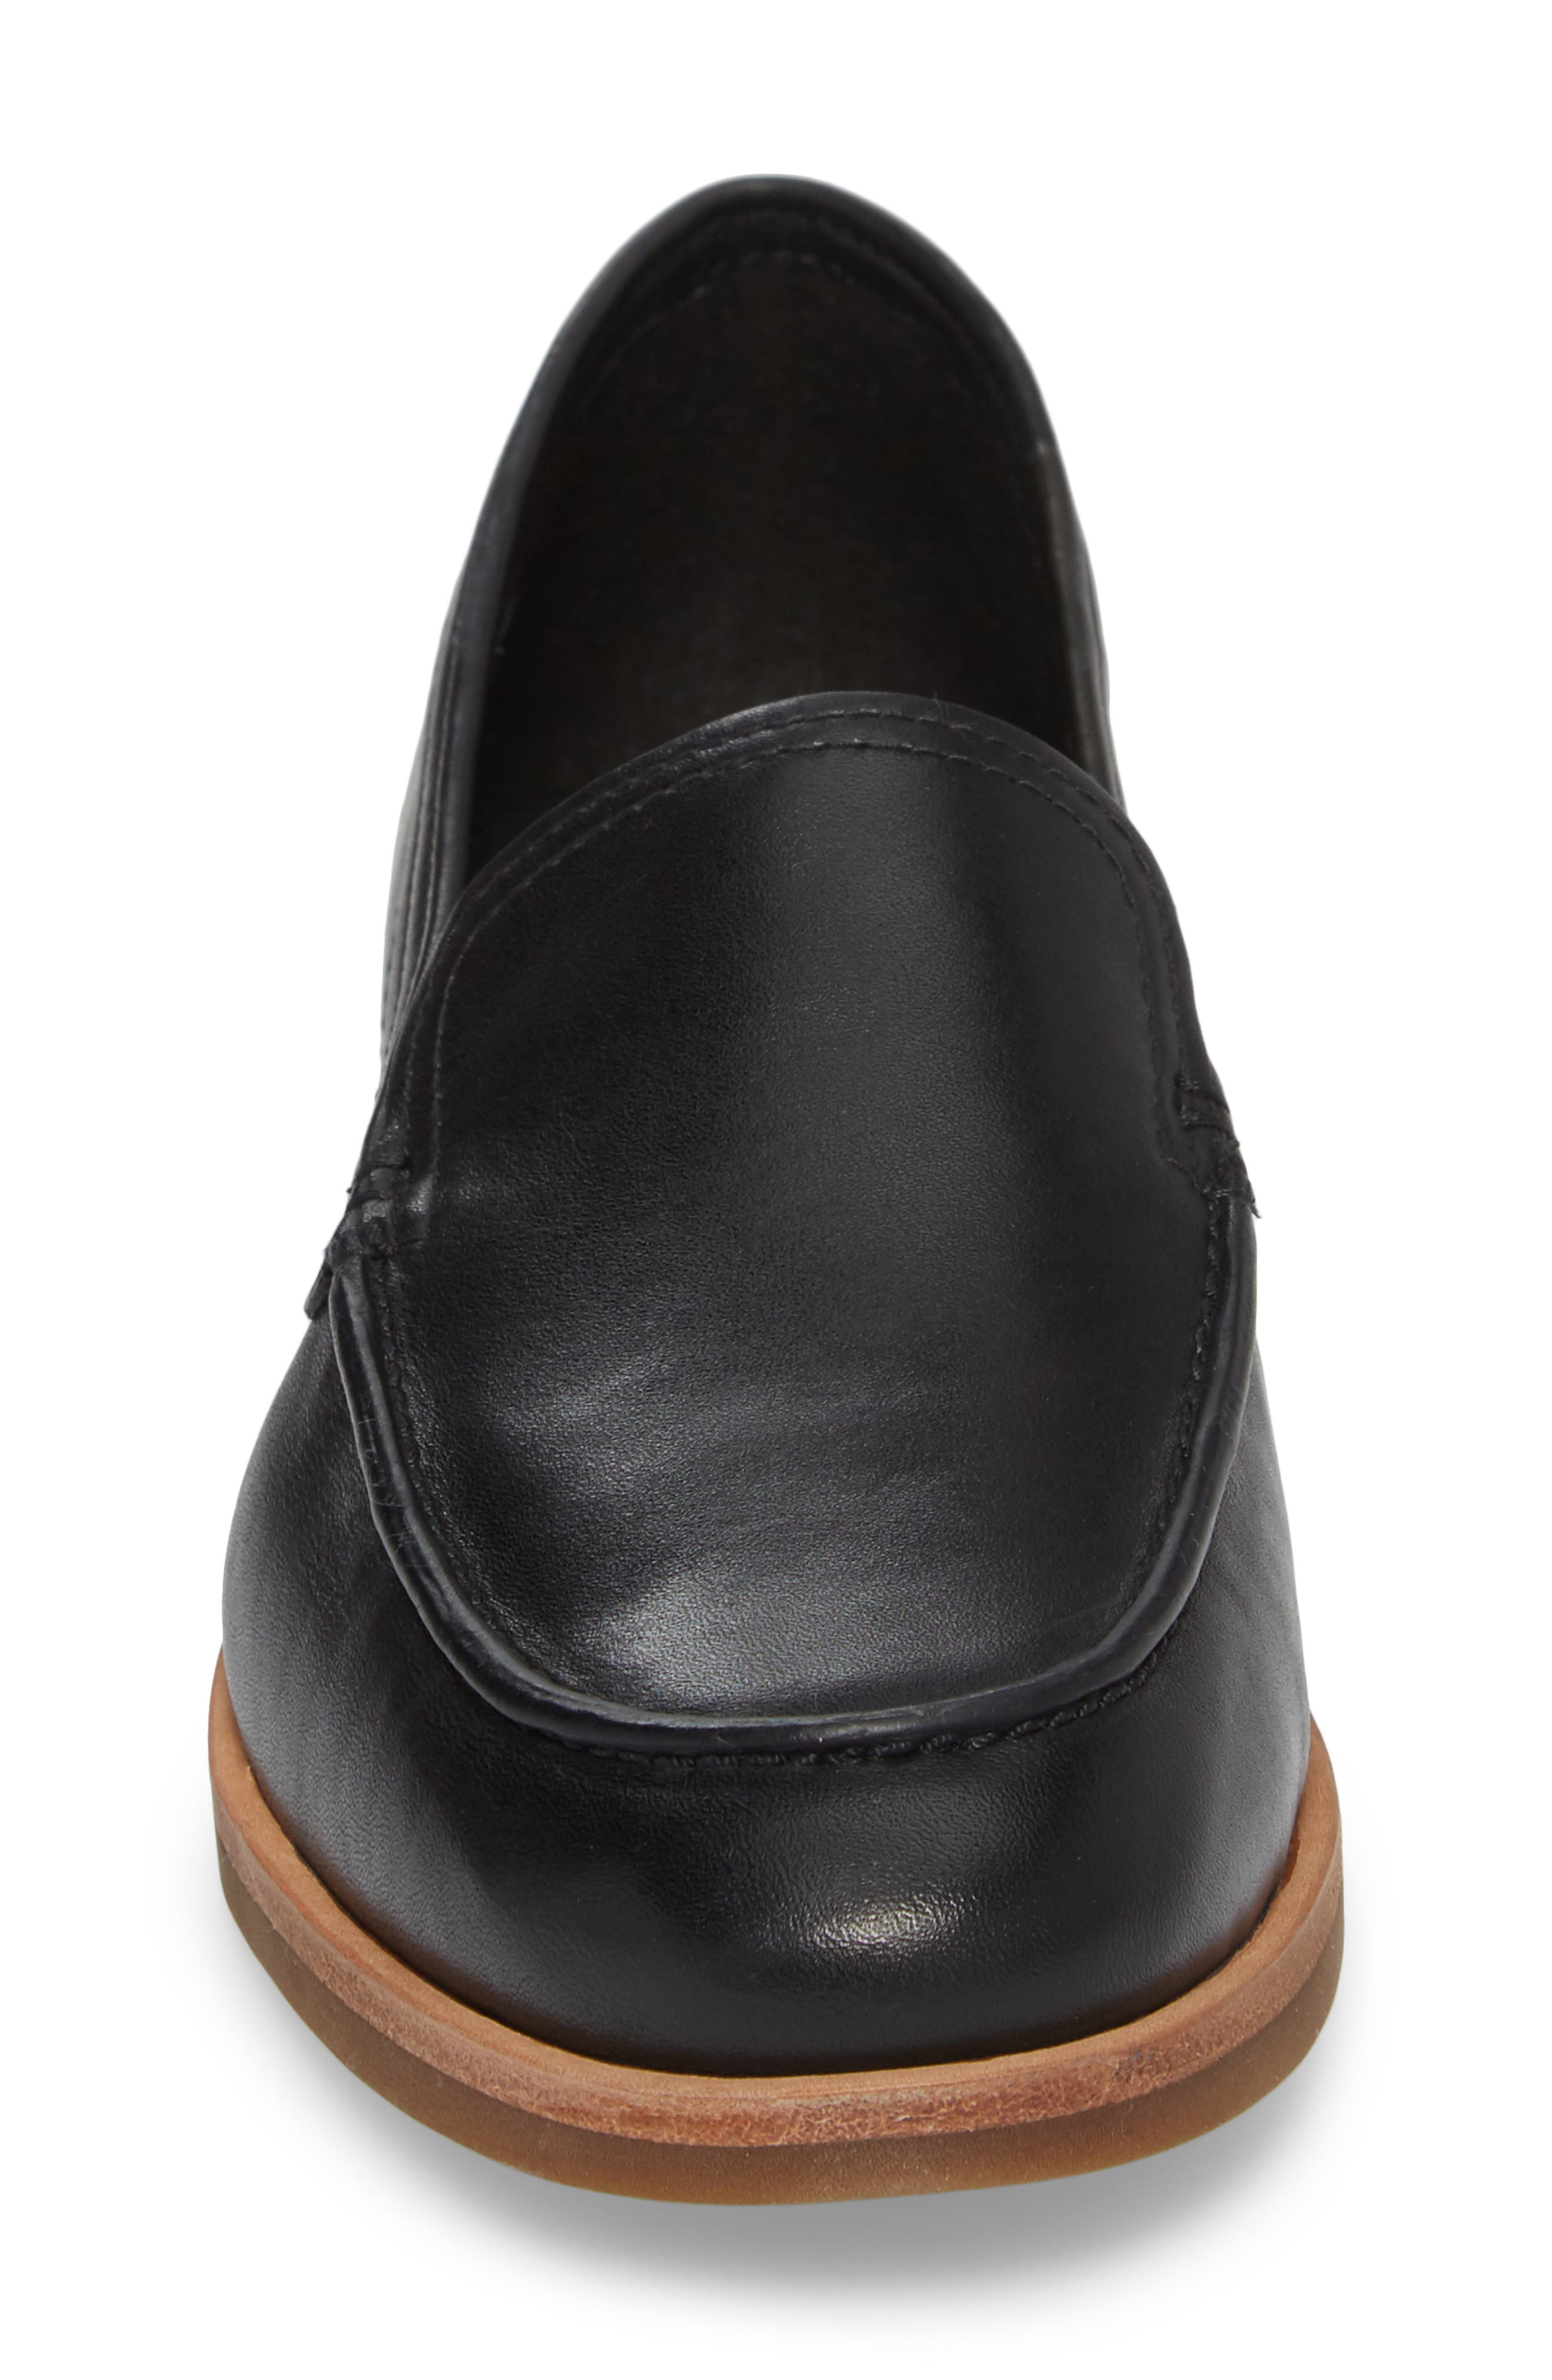 Somers Falls Loafer,                             Alternate thumbnail 4, color,                             001